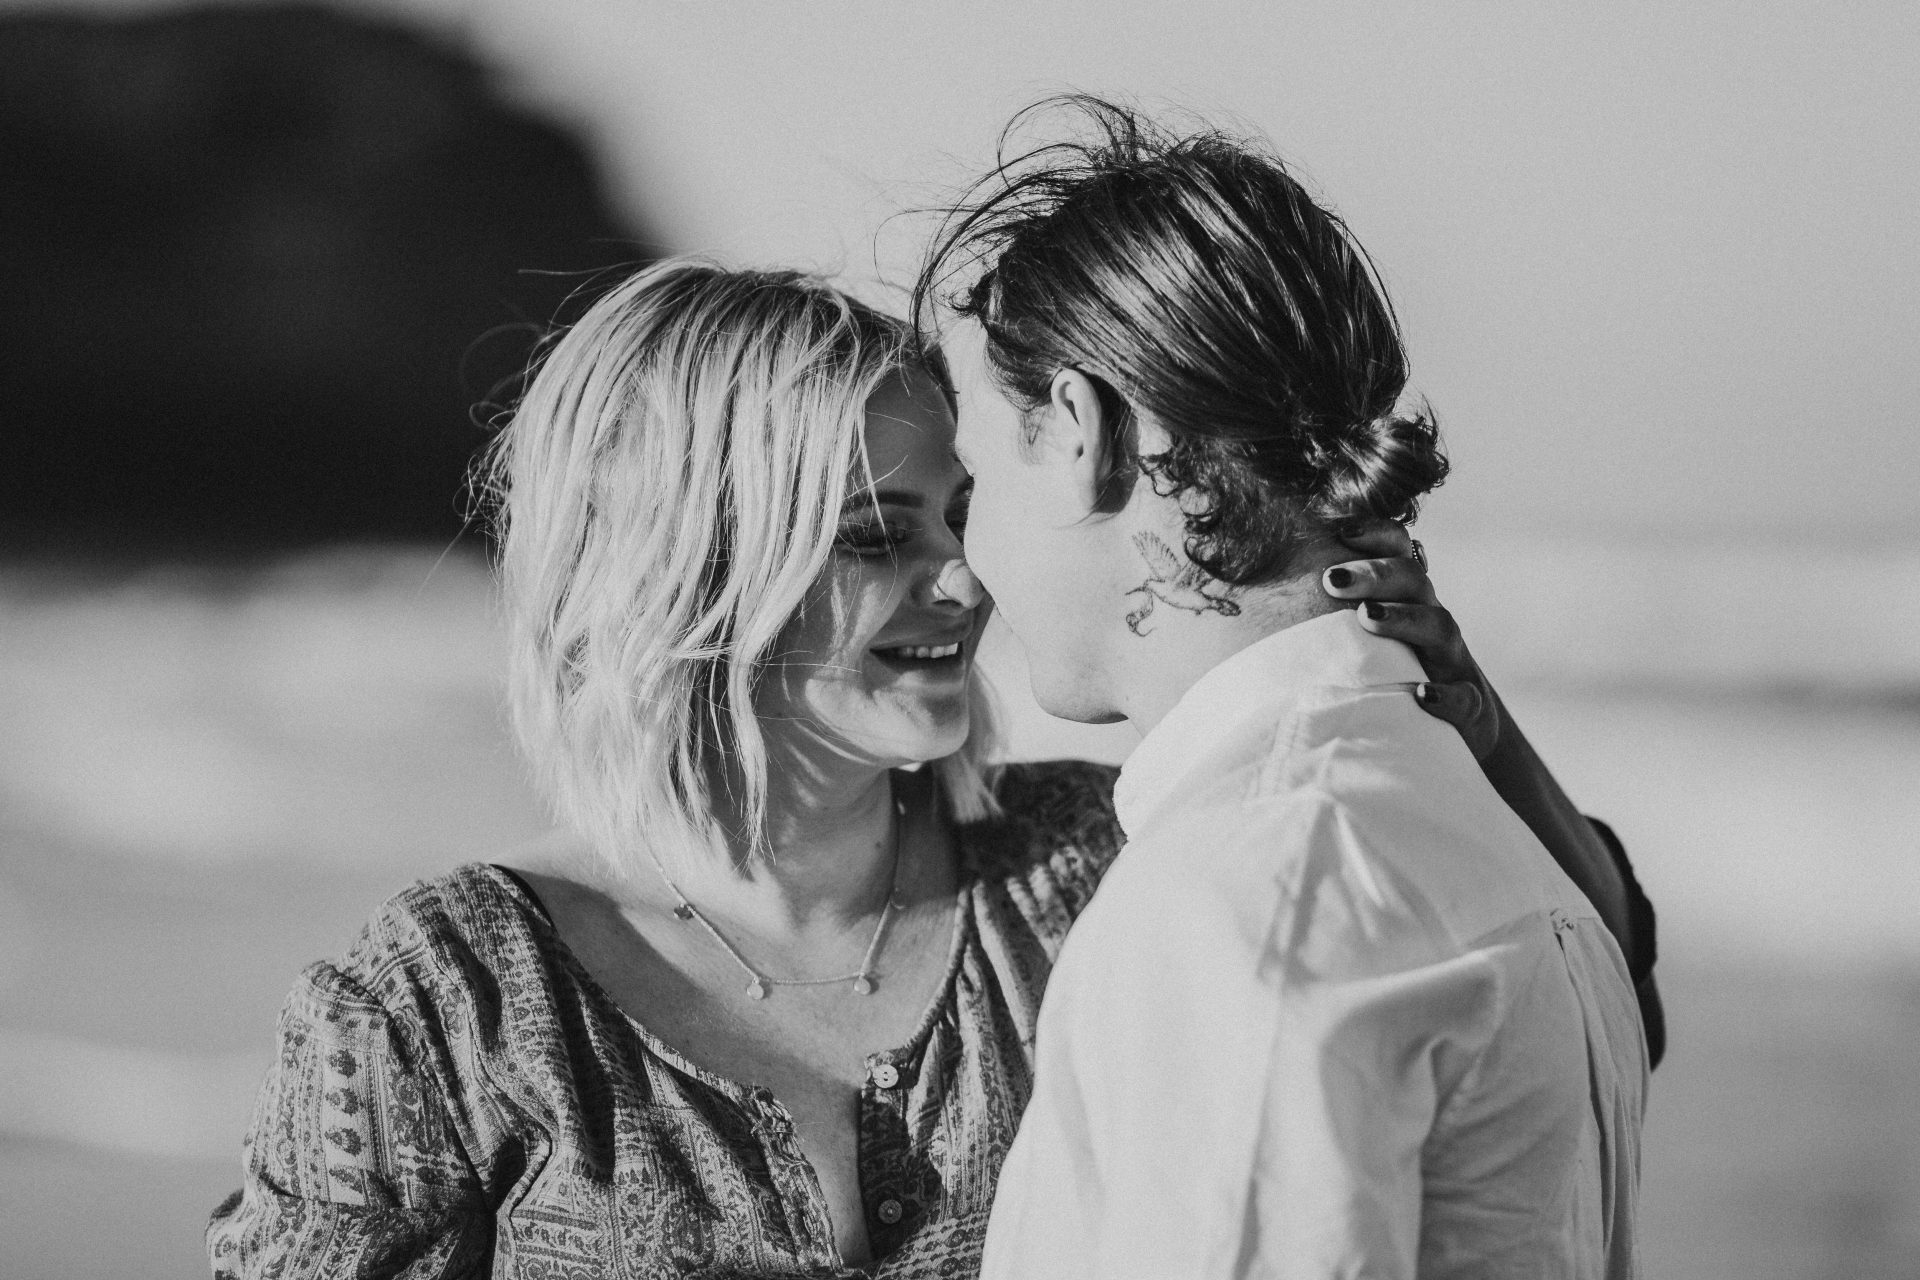 Black and white image of couple caressing at maternity session at Dudley Beach at sunset